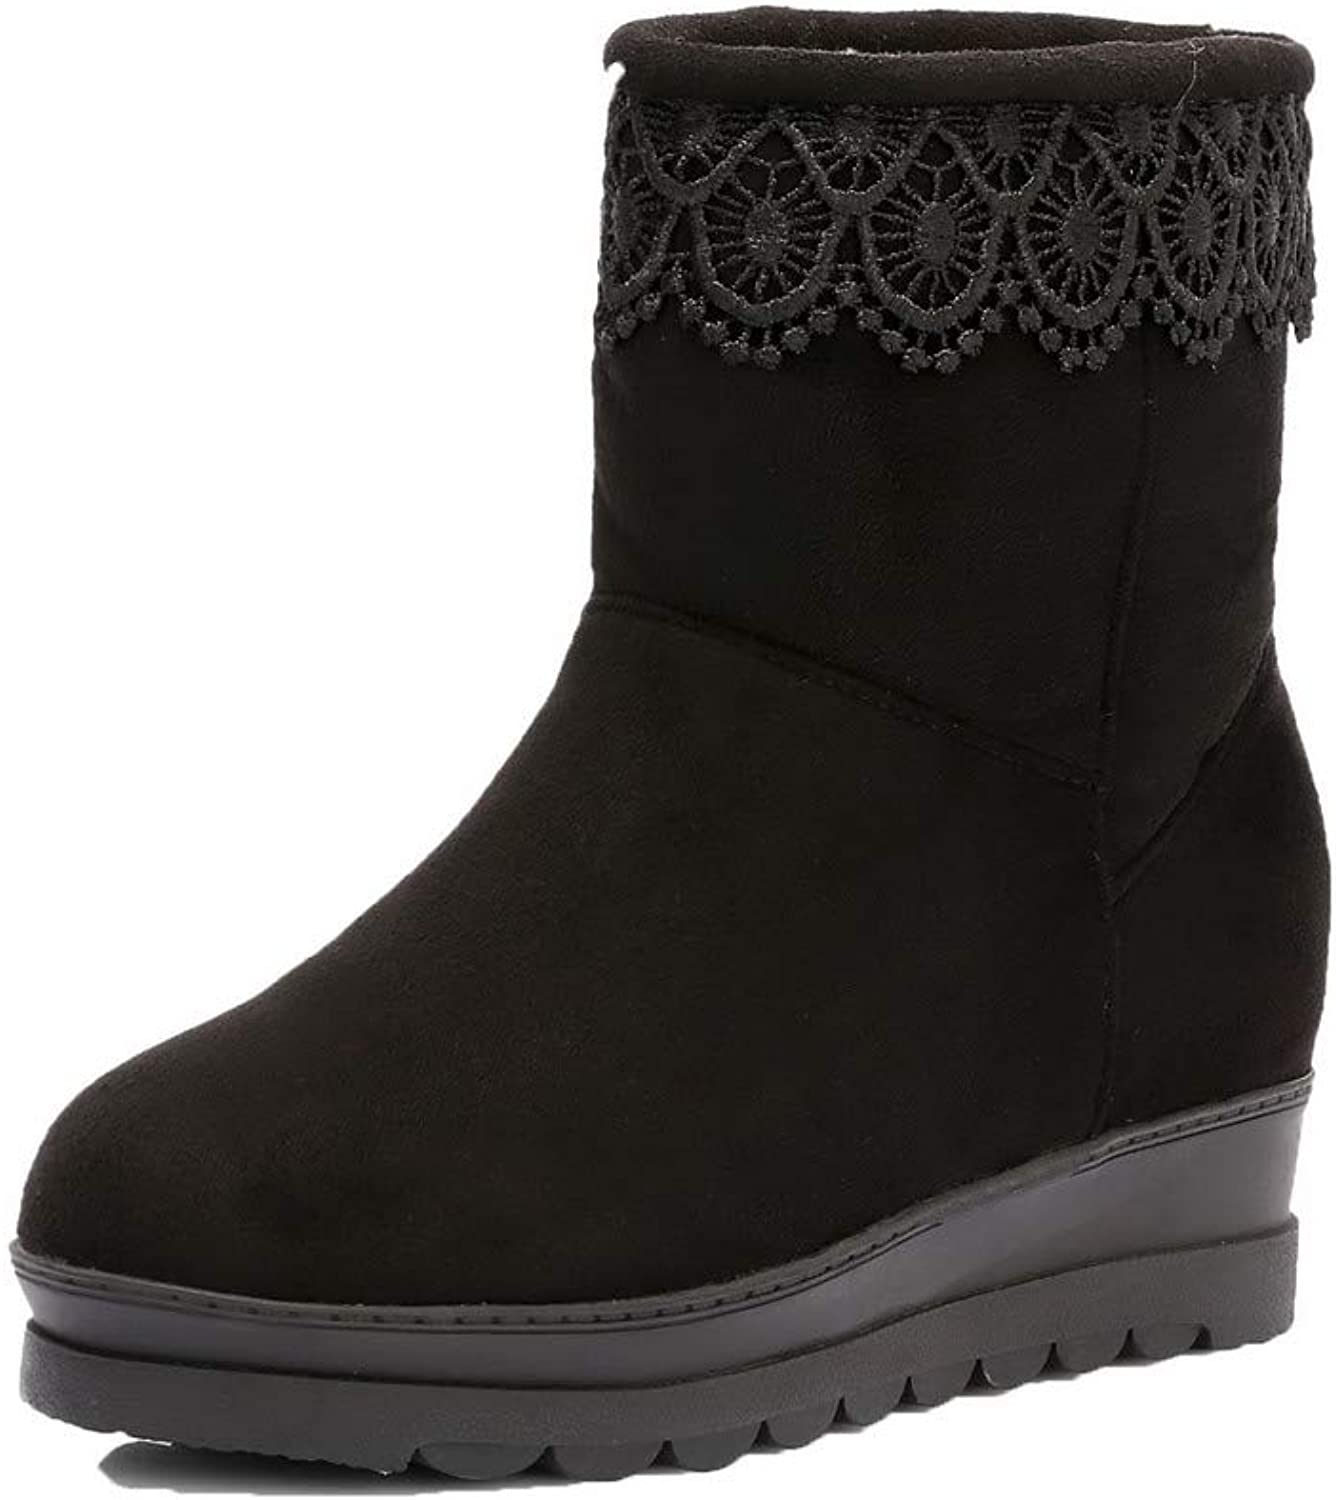 WeiPoot Women's Pull-On Low-Heels Imitated Suede Solid Low-Top Boots, EGHXH126808